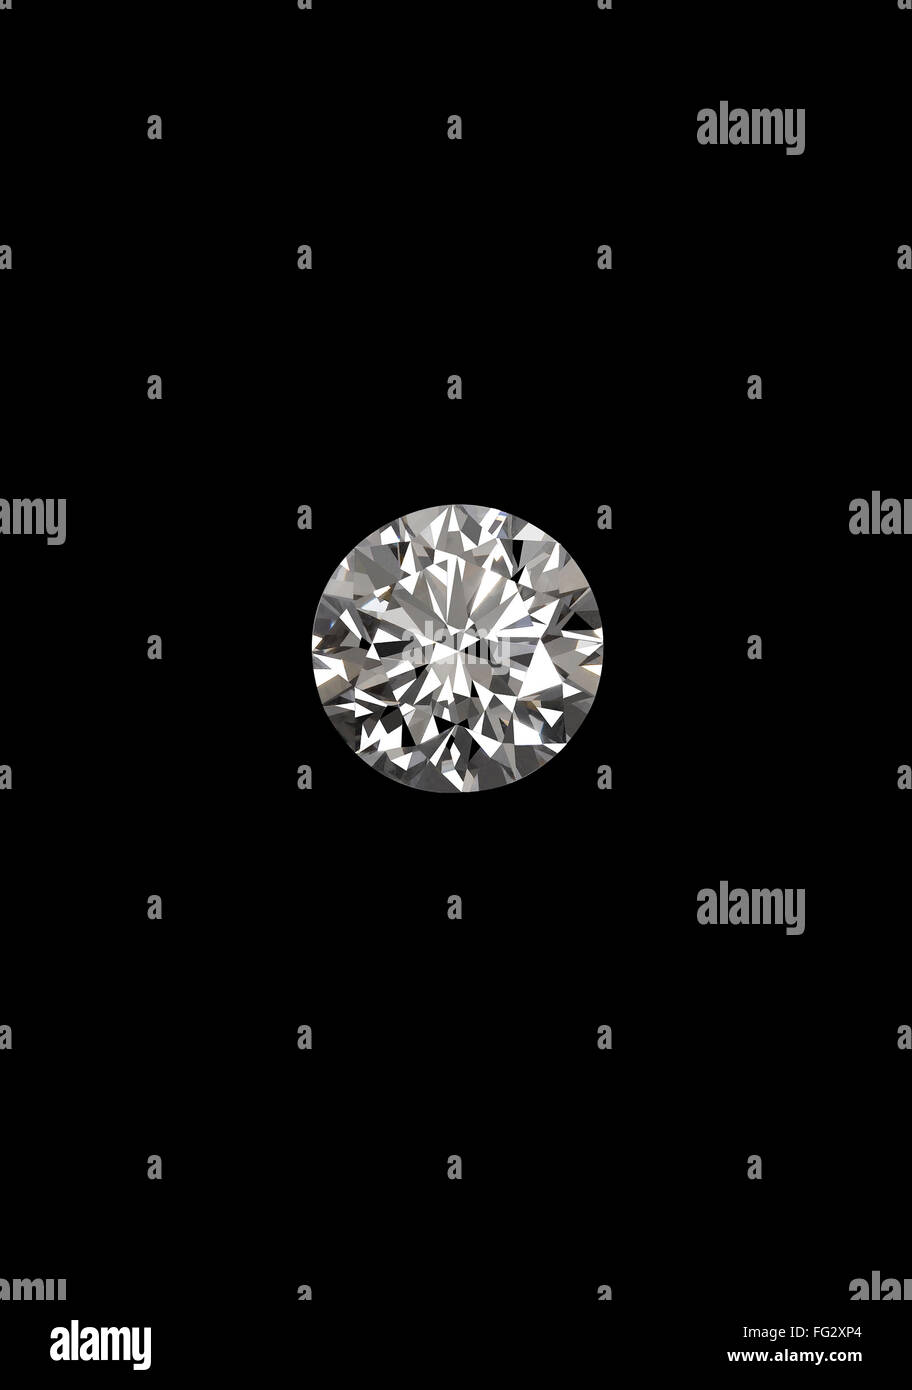 Diamond on black background - Stock Image